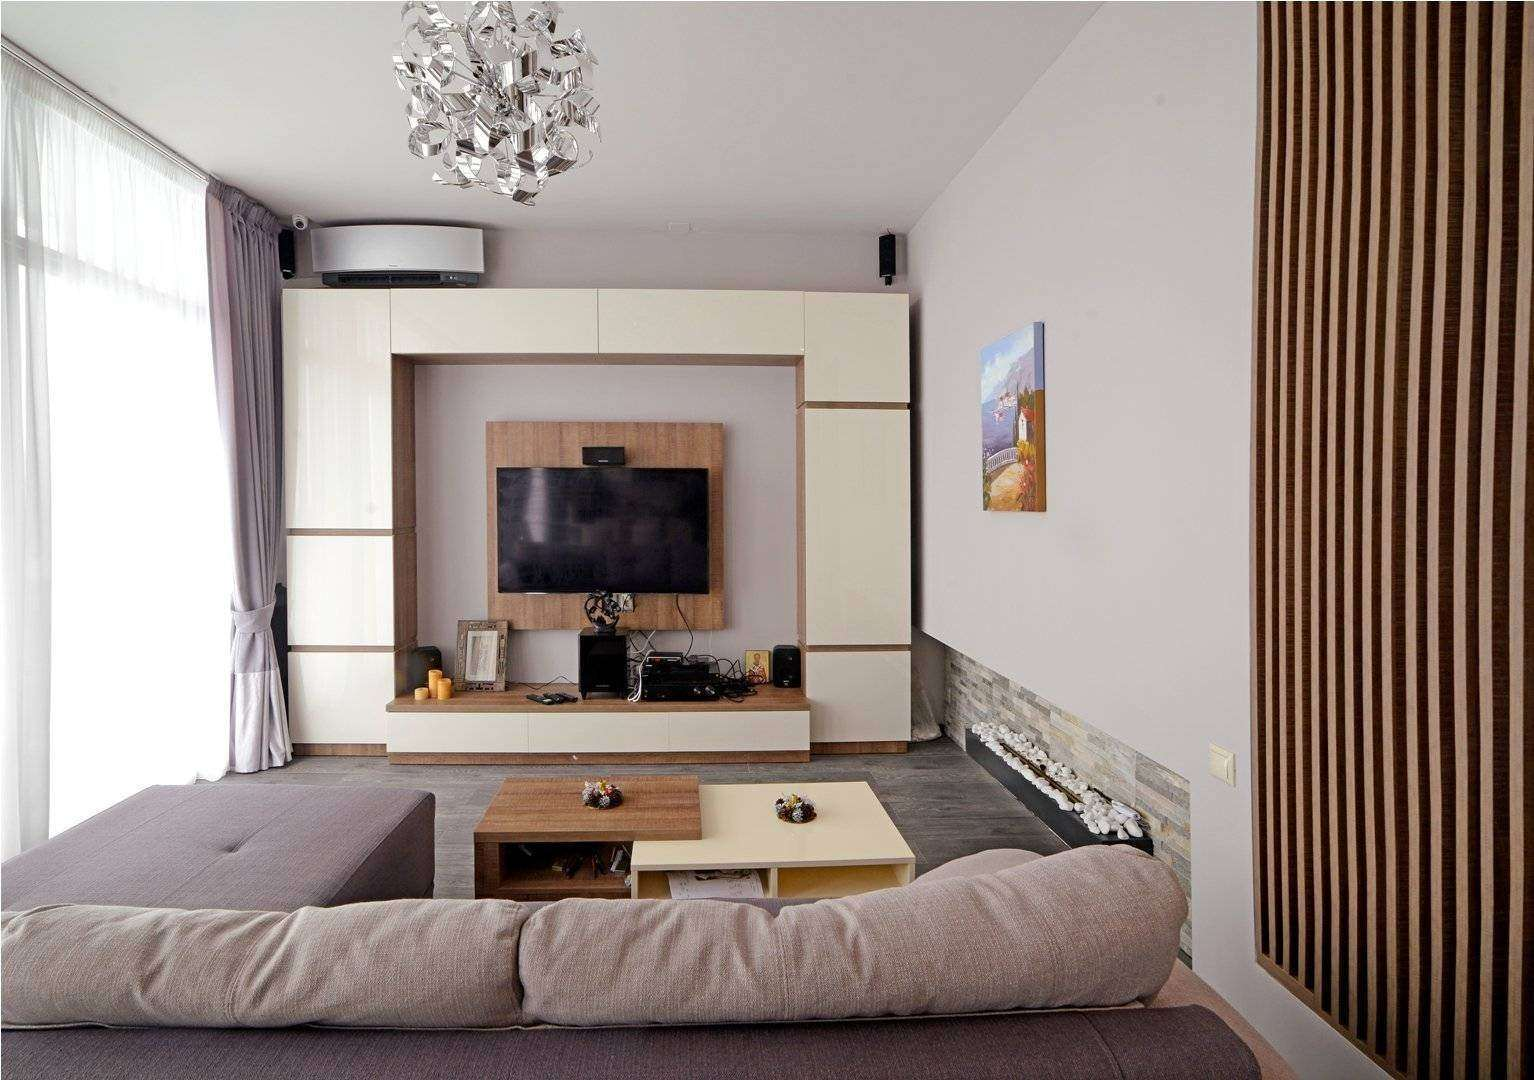 """<a href="""""""">Mobila living Anaya<img src='https://www.unican.ro/wp-content/themes/vita/img/dreapta.png' class='pull-right hidden-xs' style='margin-right:-10px;margin-top:-10px; max-height:41px'></a>"""